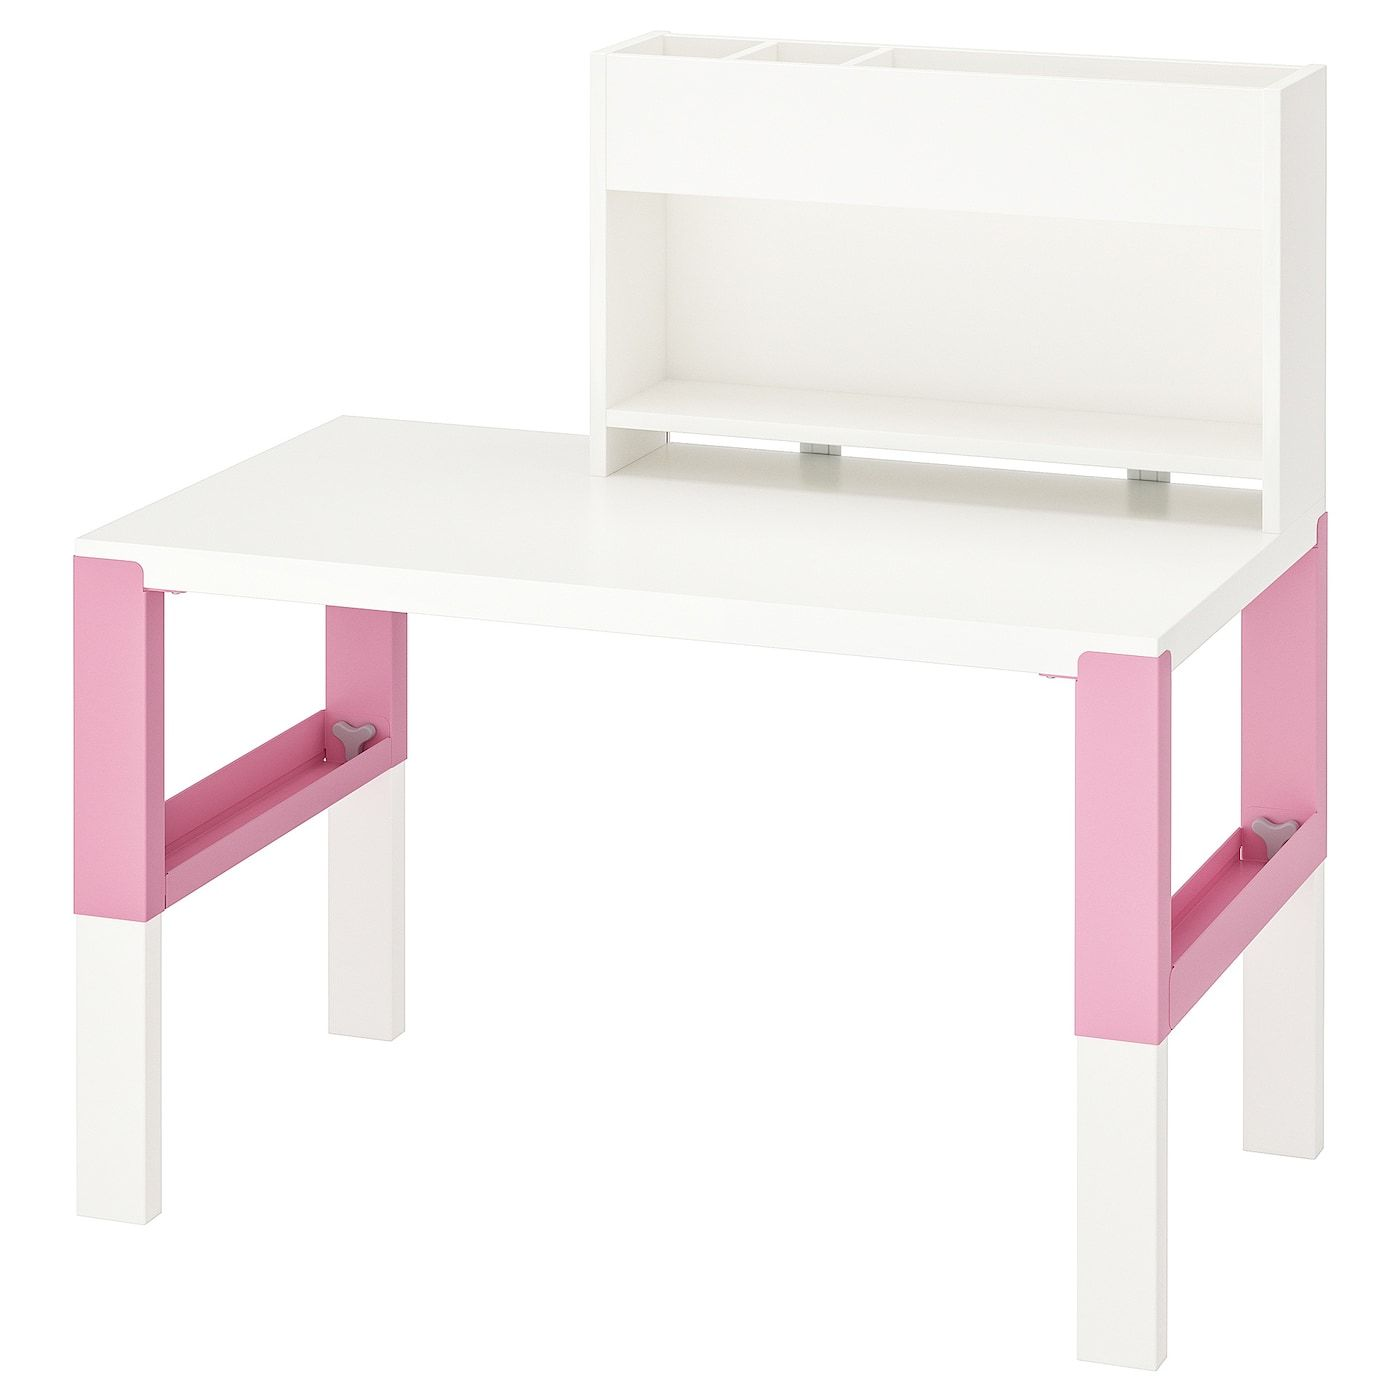 Pahl Desk With Add On Unit White Pink 96x58 Cm Ikea Canada Ikea In 2020 Schreibtisch Aufsatz Schreibtischideen Ikea Schreibtisch